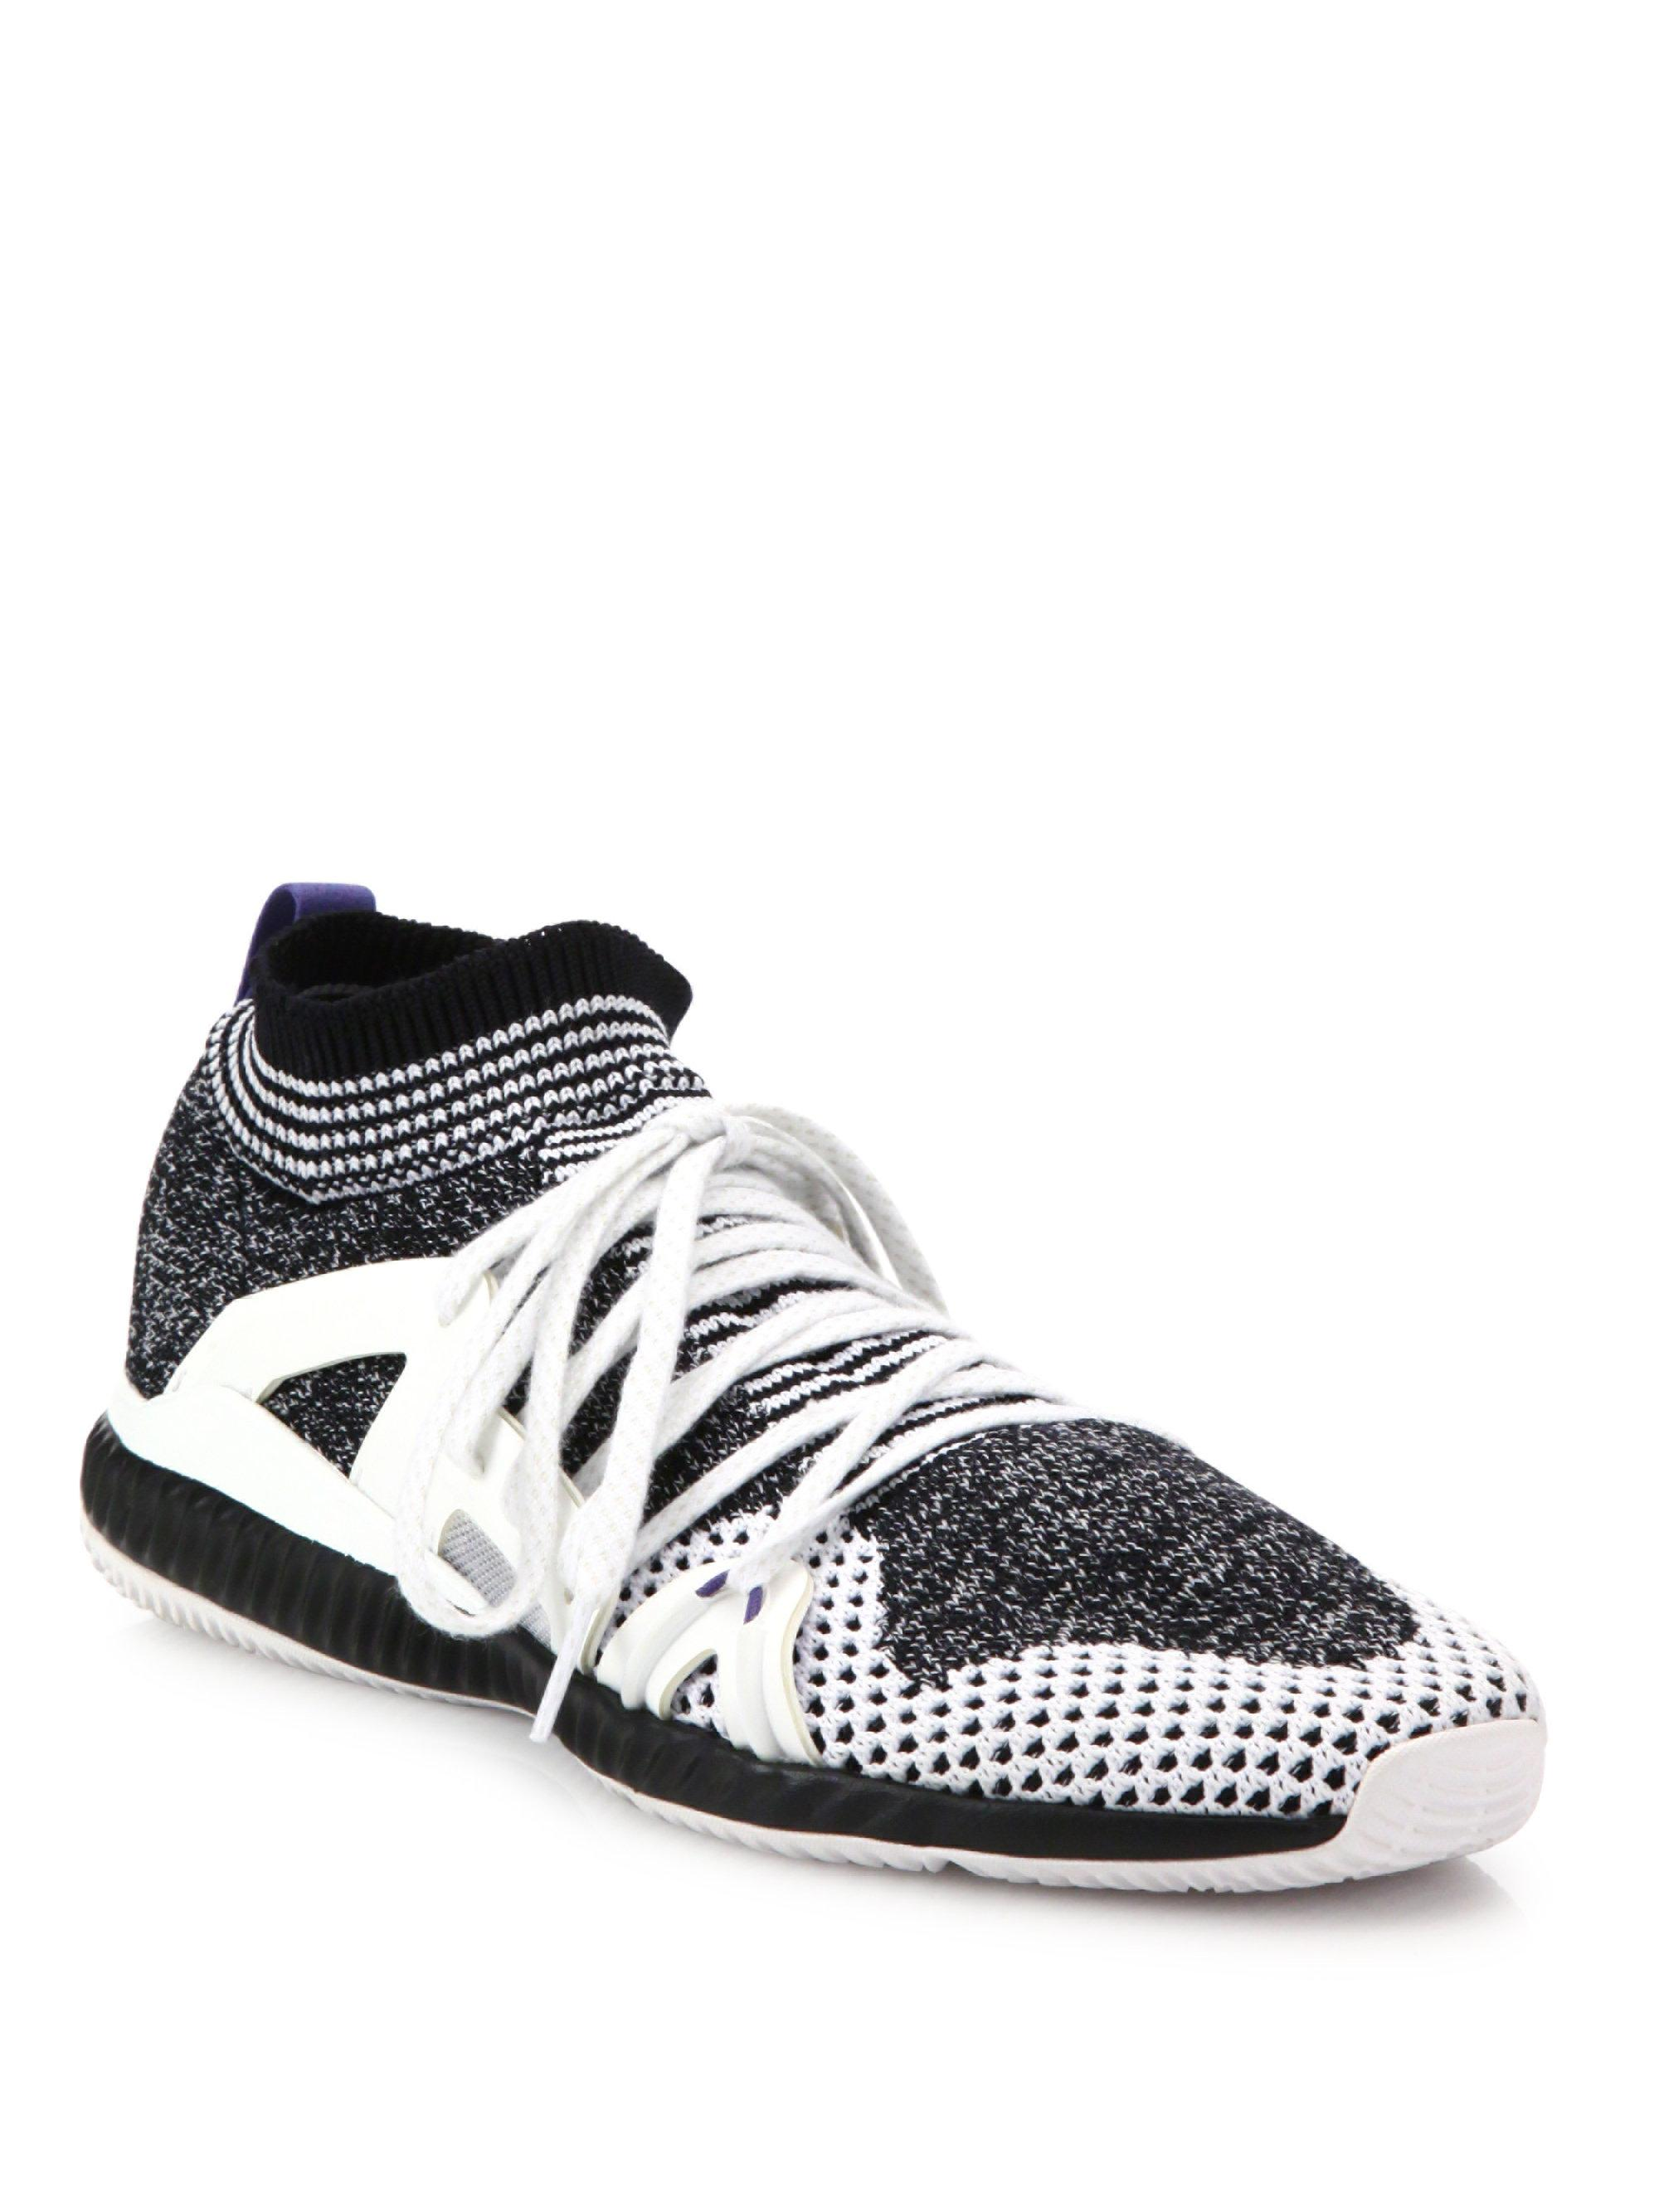 6311f6563 adidas By Stella McCartney Women s Crazymove Bounce Trainer Sneakers ...